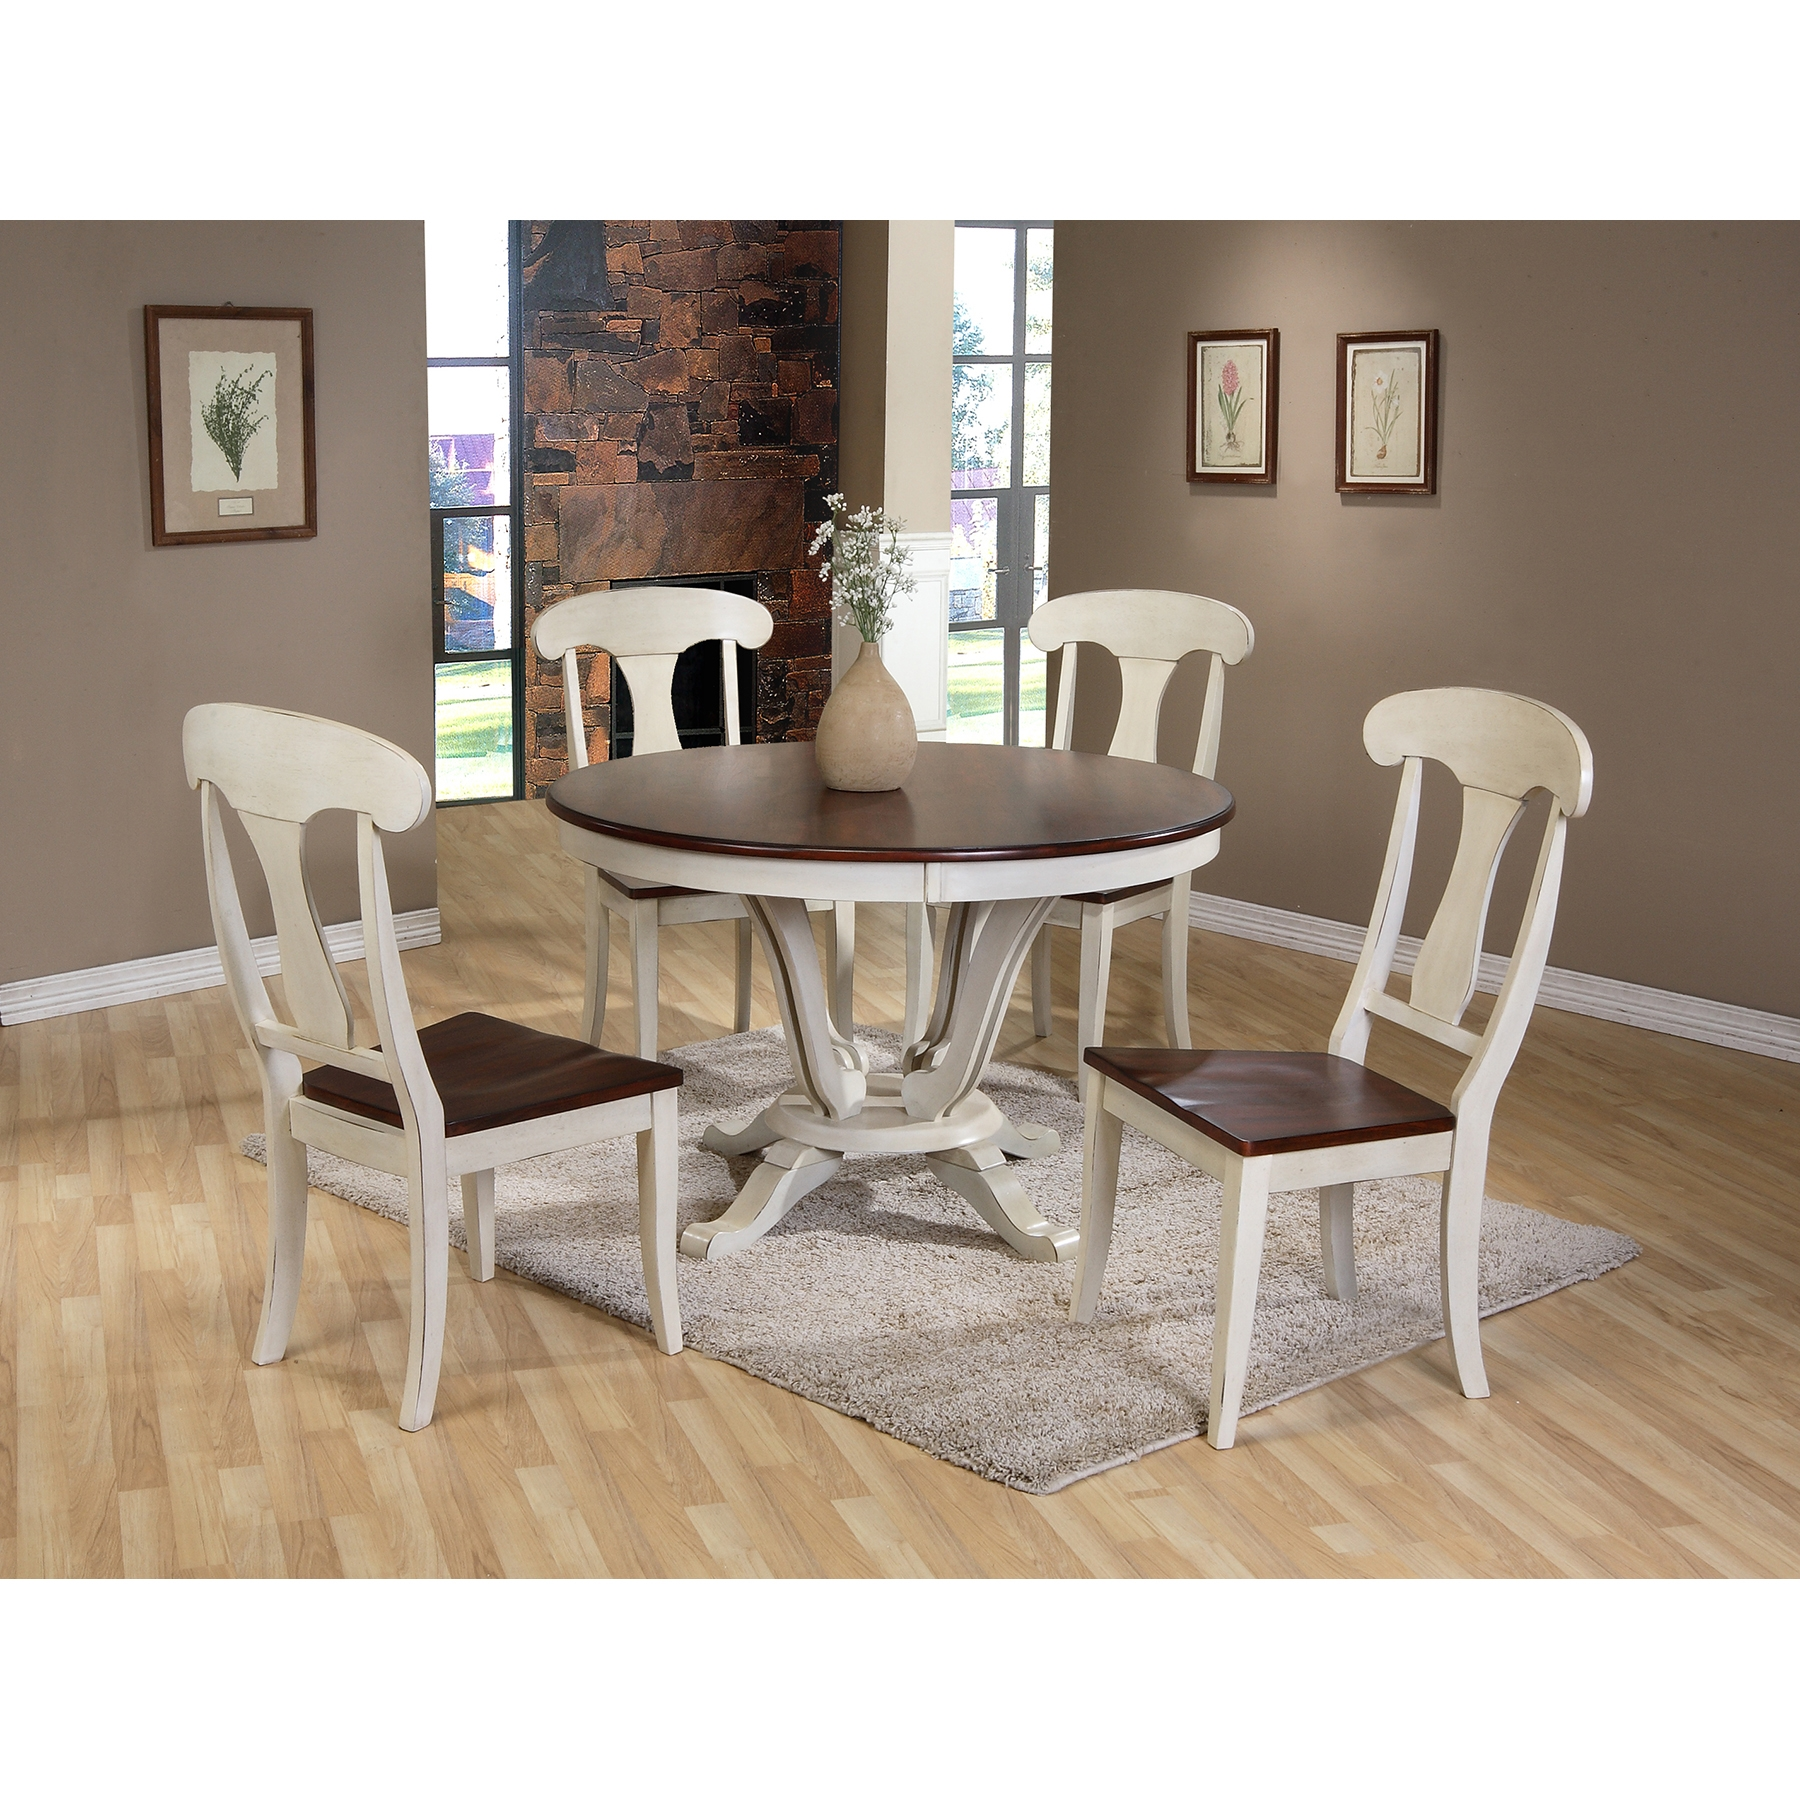 Oak Top Dining Table Part - 26: ... Baxton Studio Napoleon Chic Country Cottage Antique Oak Wood And  Distressed White 5-Piece Dining